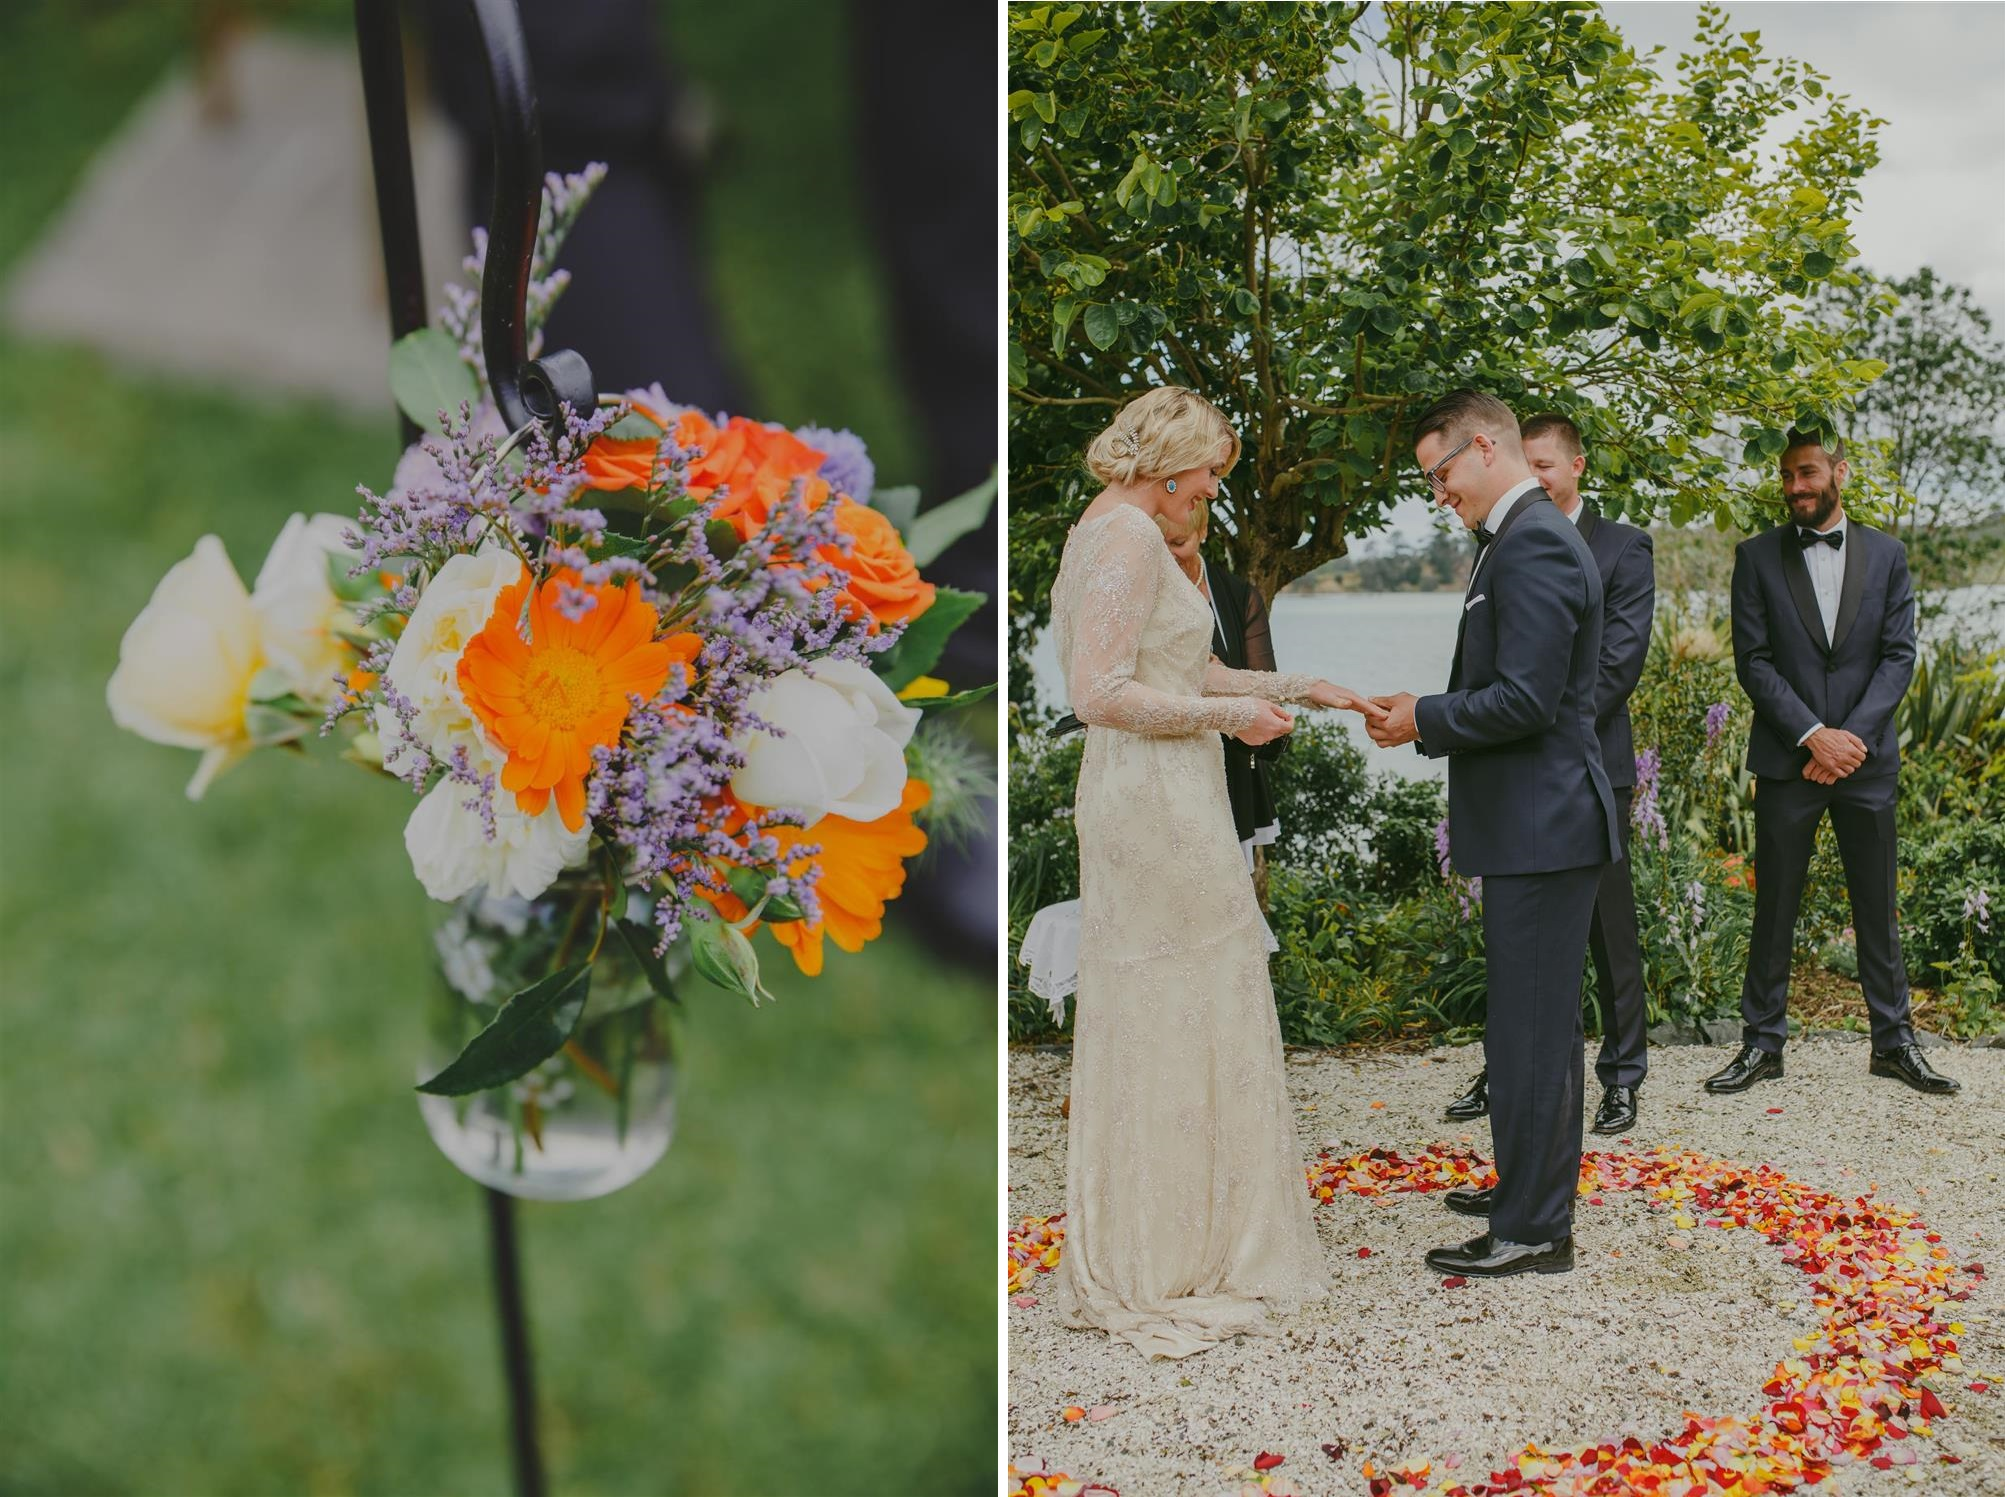 Wedding Ceremony - An Elegant Spring Vintage Wedding